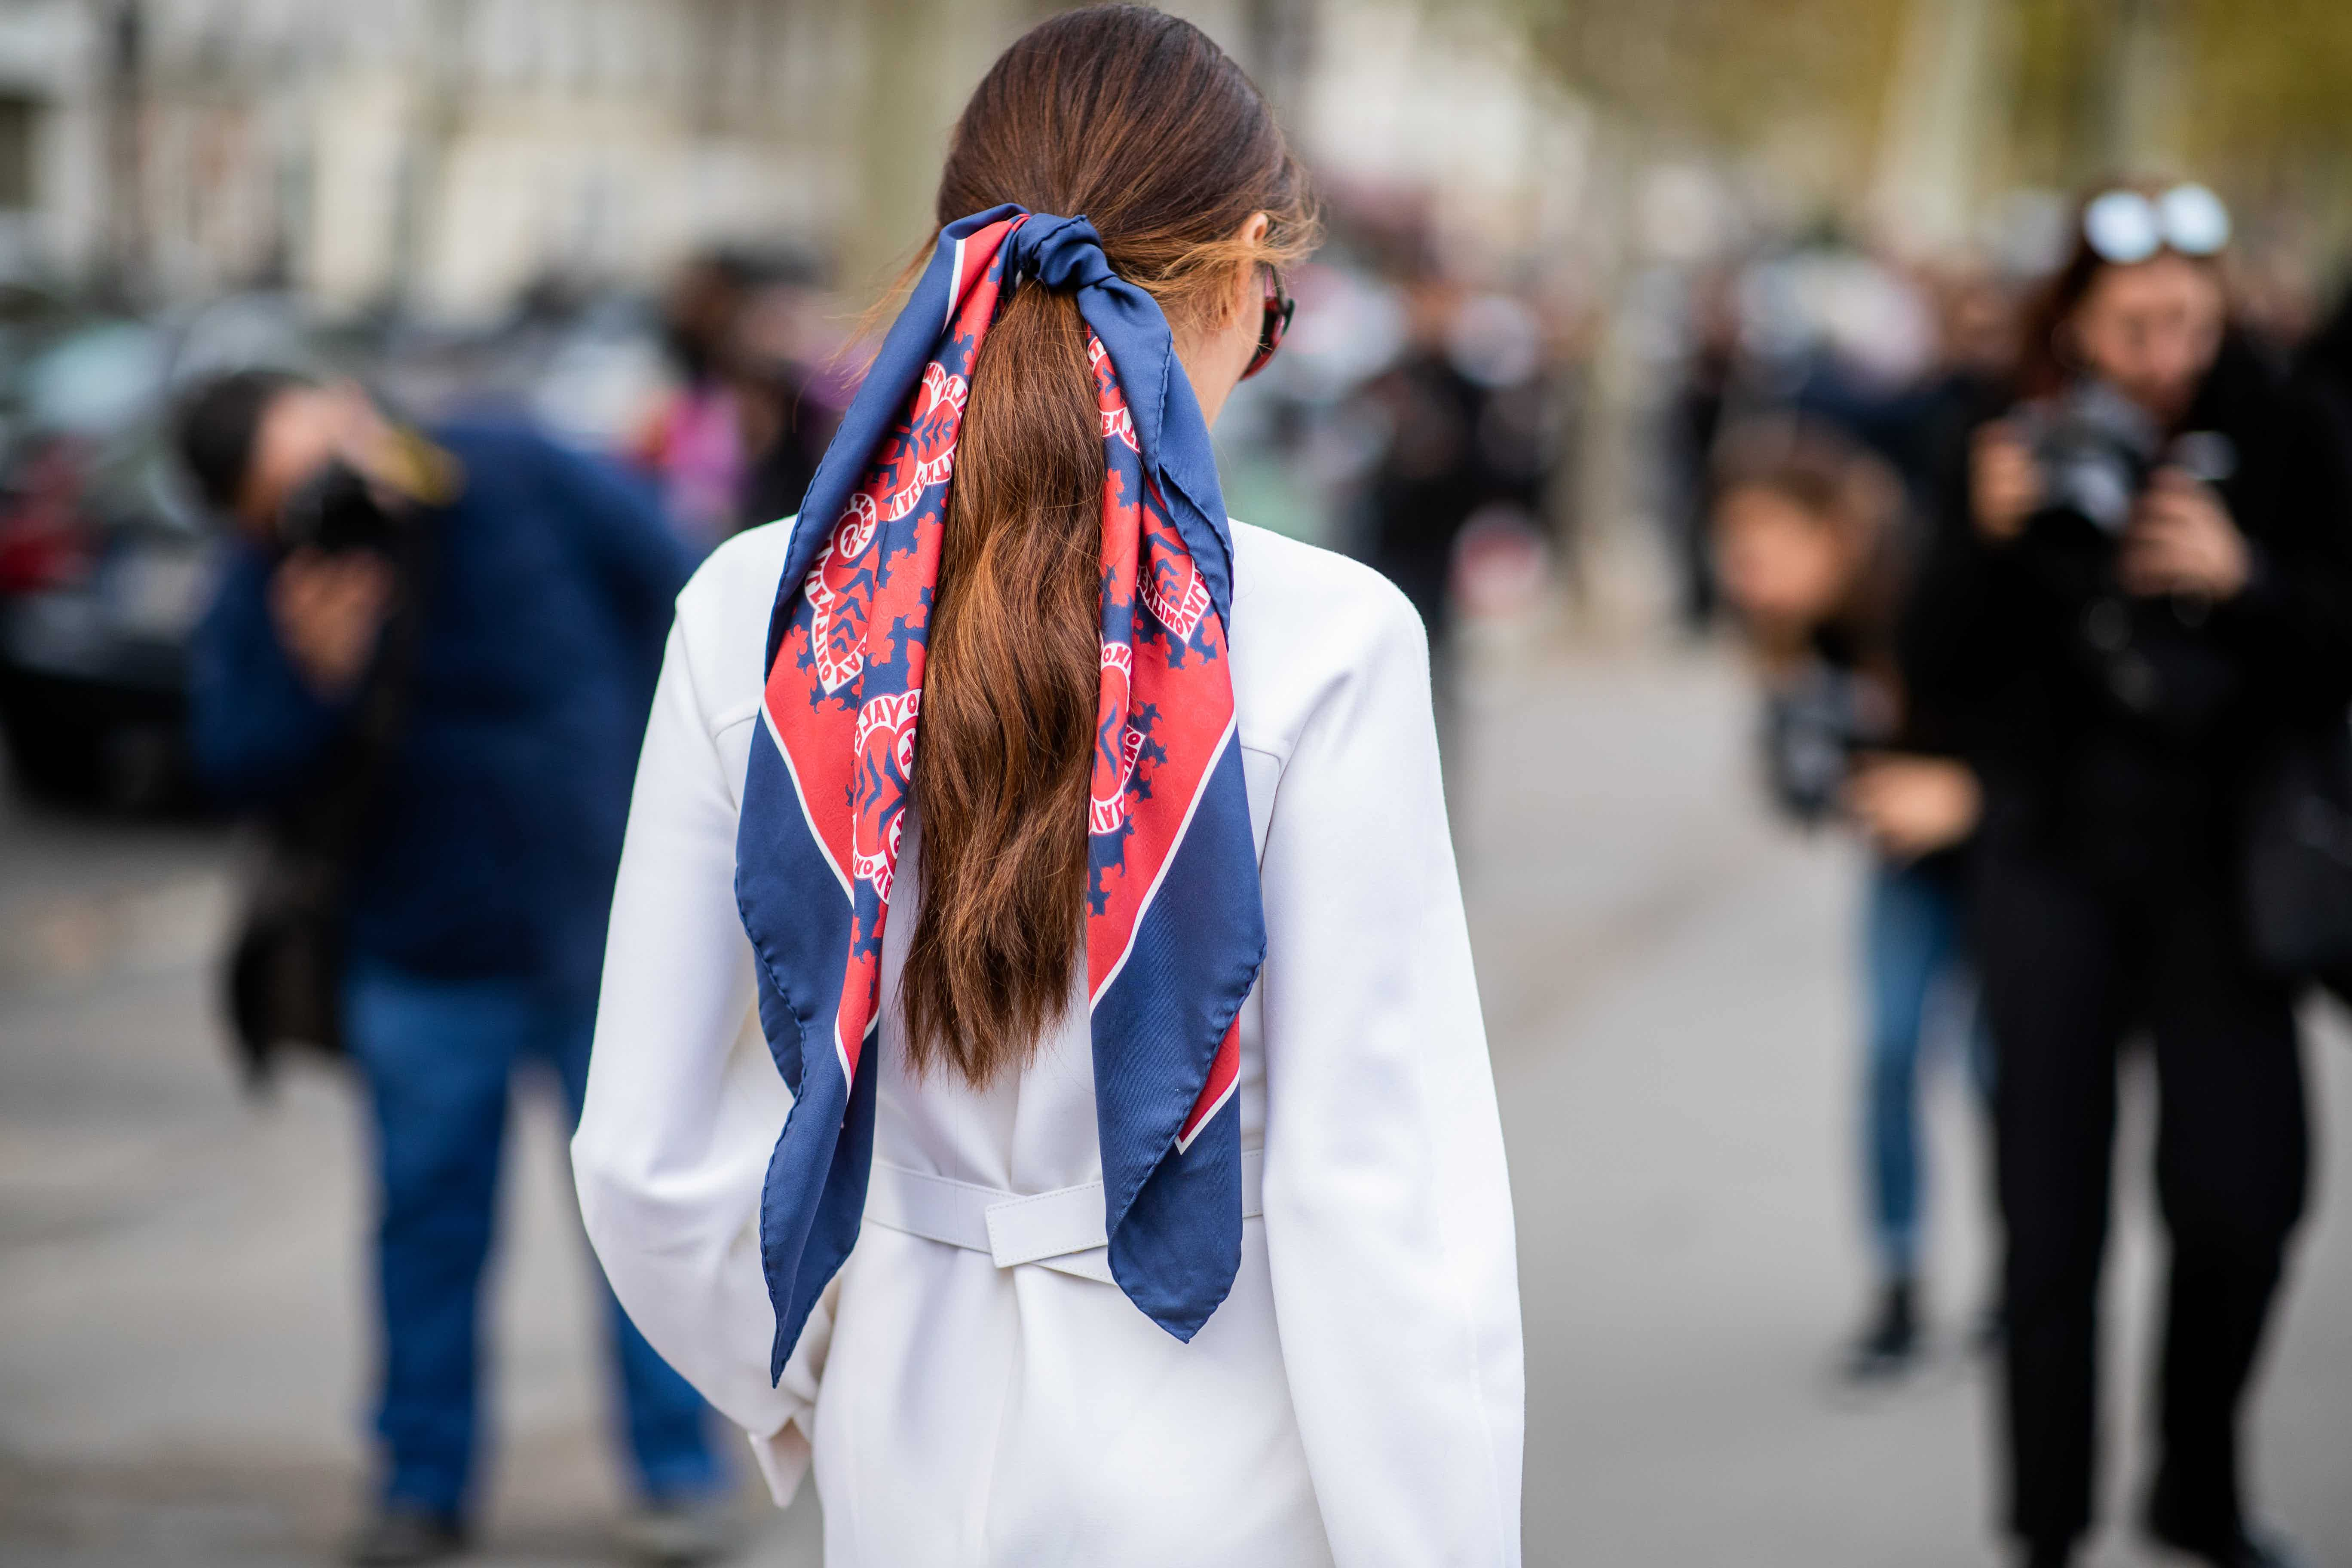 The Effortless Chic